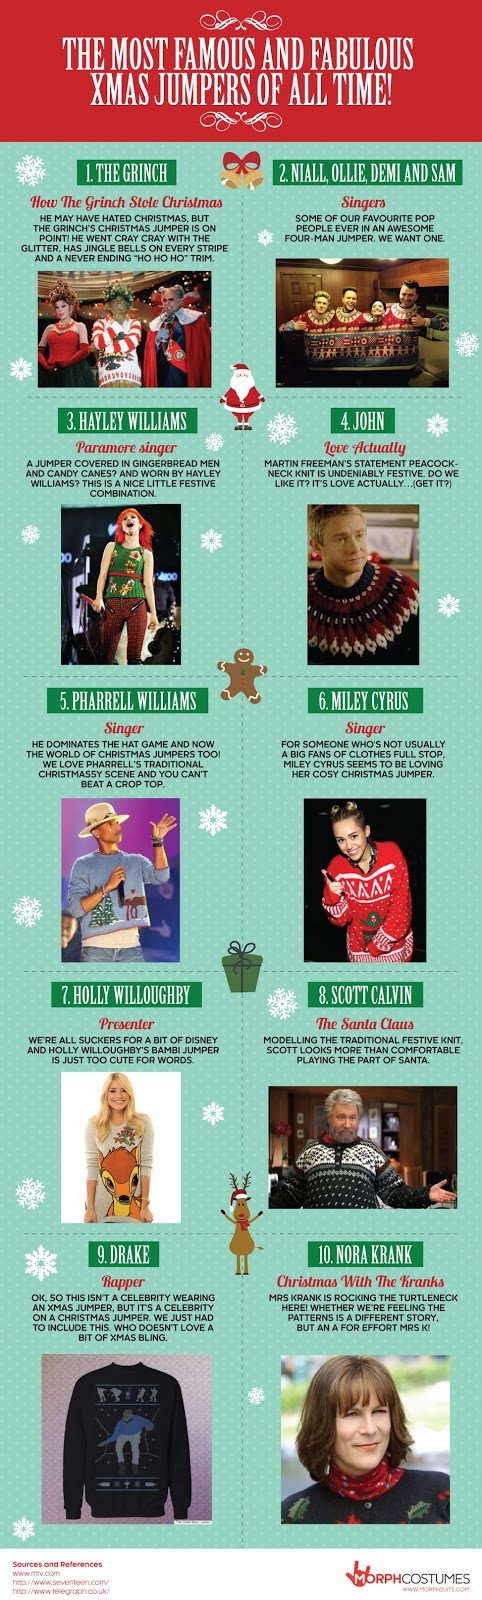 The Most Famous and Fabulous Xmas Jumpers of All Time